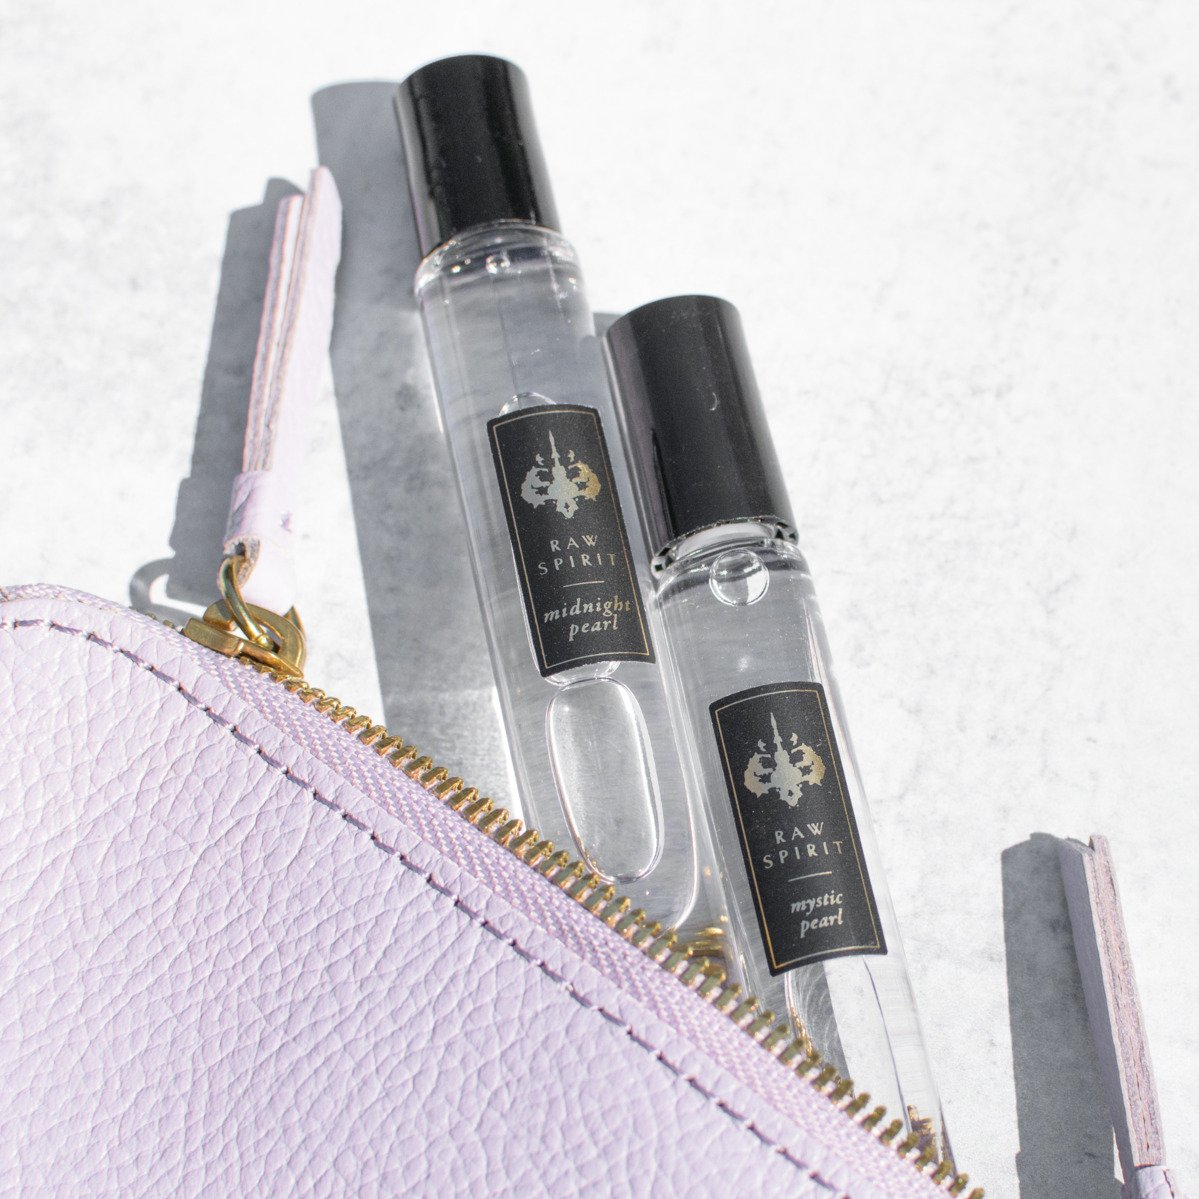 Discover Bali, Eau de Parfum Rollerball Set - MYSTIC PEARL and MIDNIGHT PEARL - Raw Spirit, Inc.